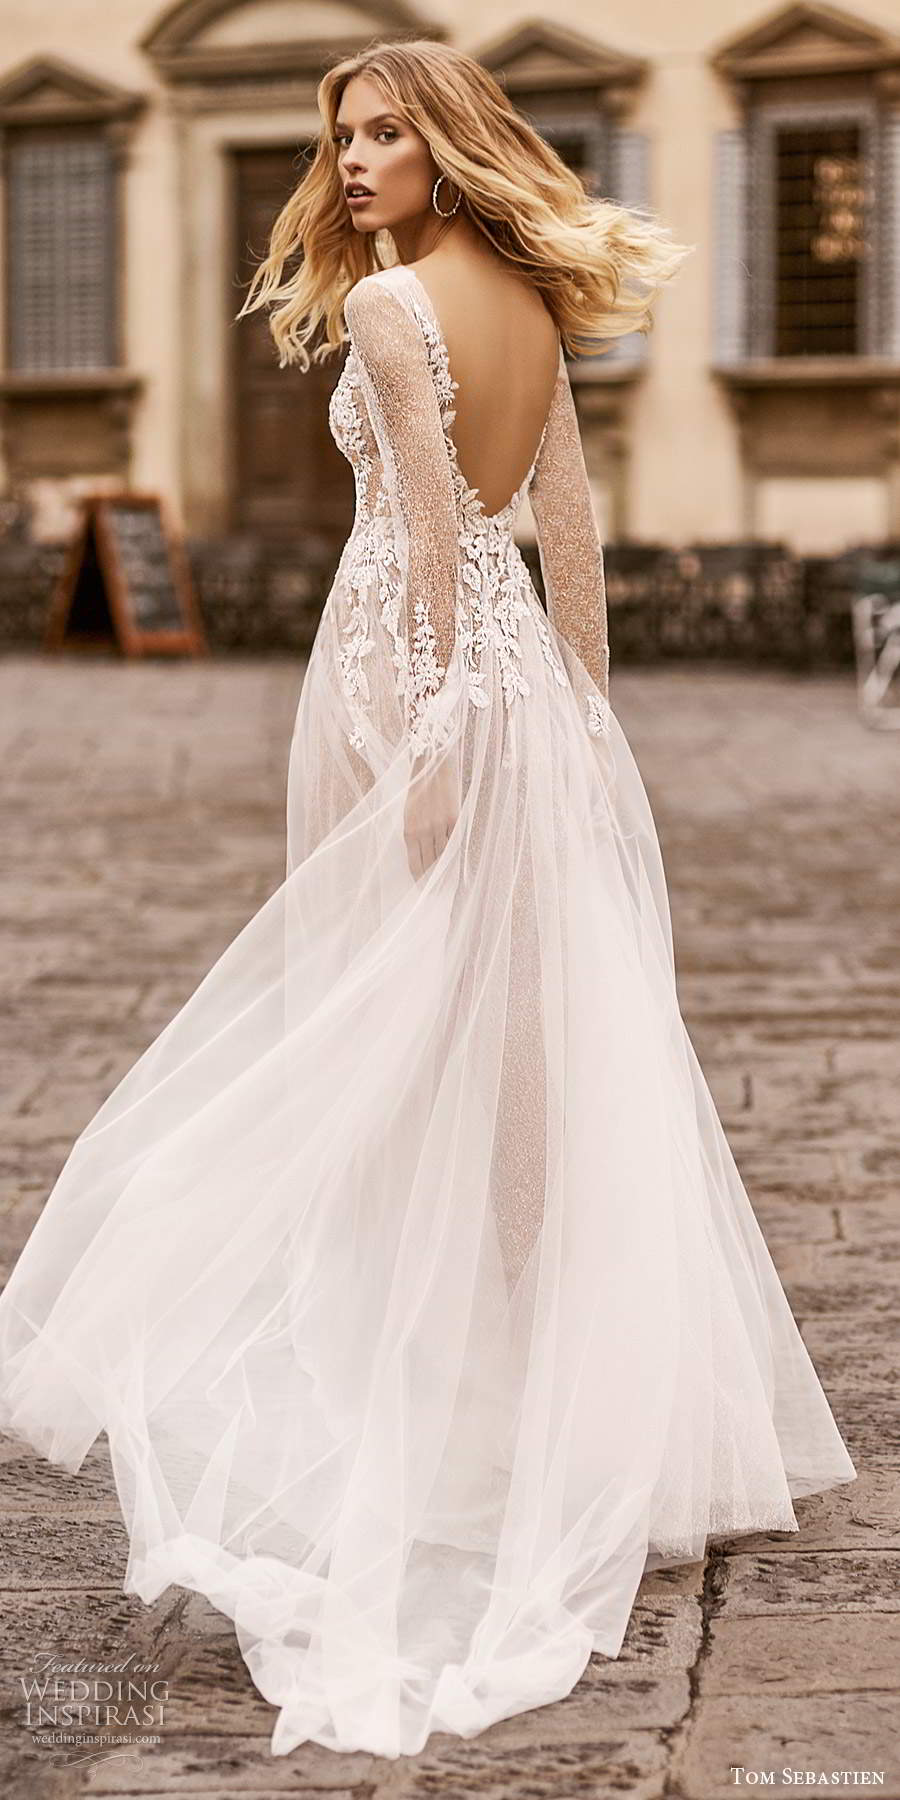 tom sebastien 2020 bridal illusion long sleeves plunging neckline heavily embellished bodice a line ball gown wedding dress chapel train (16) bv